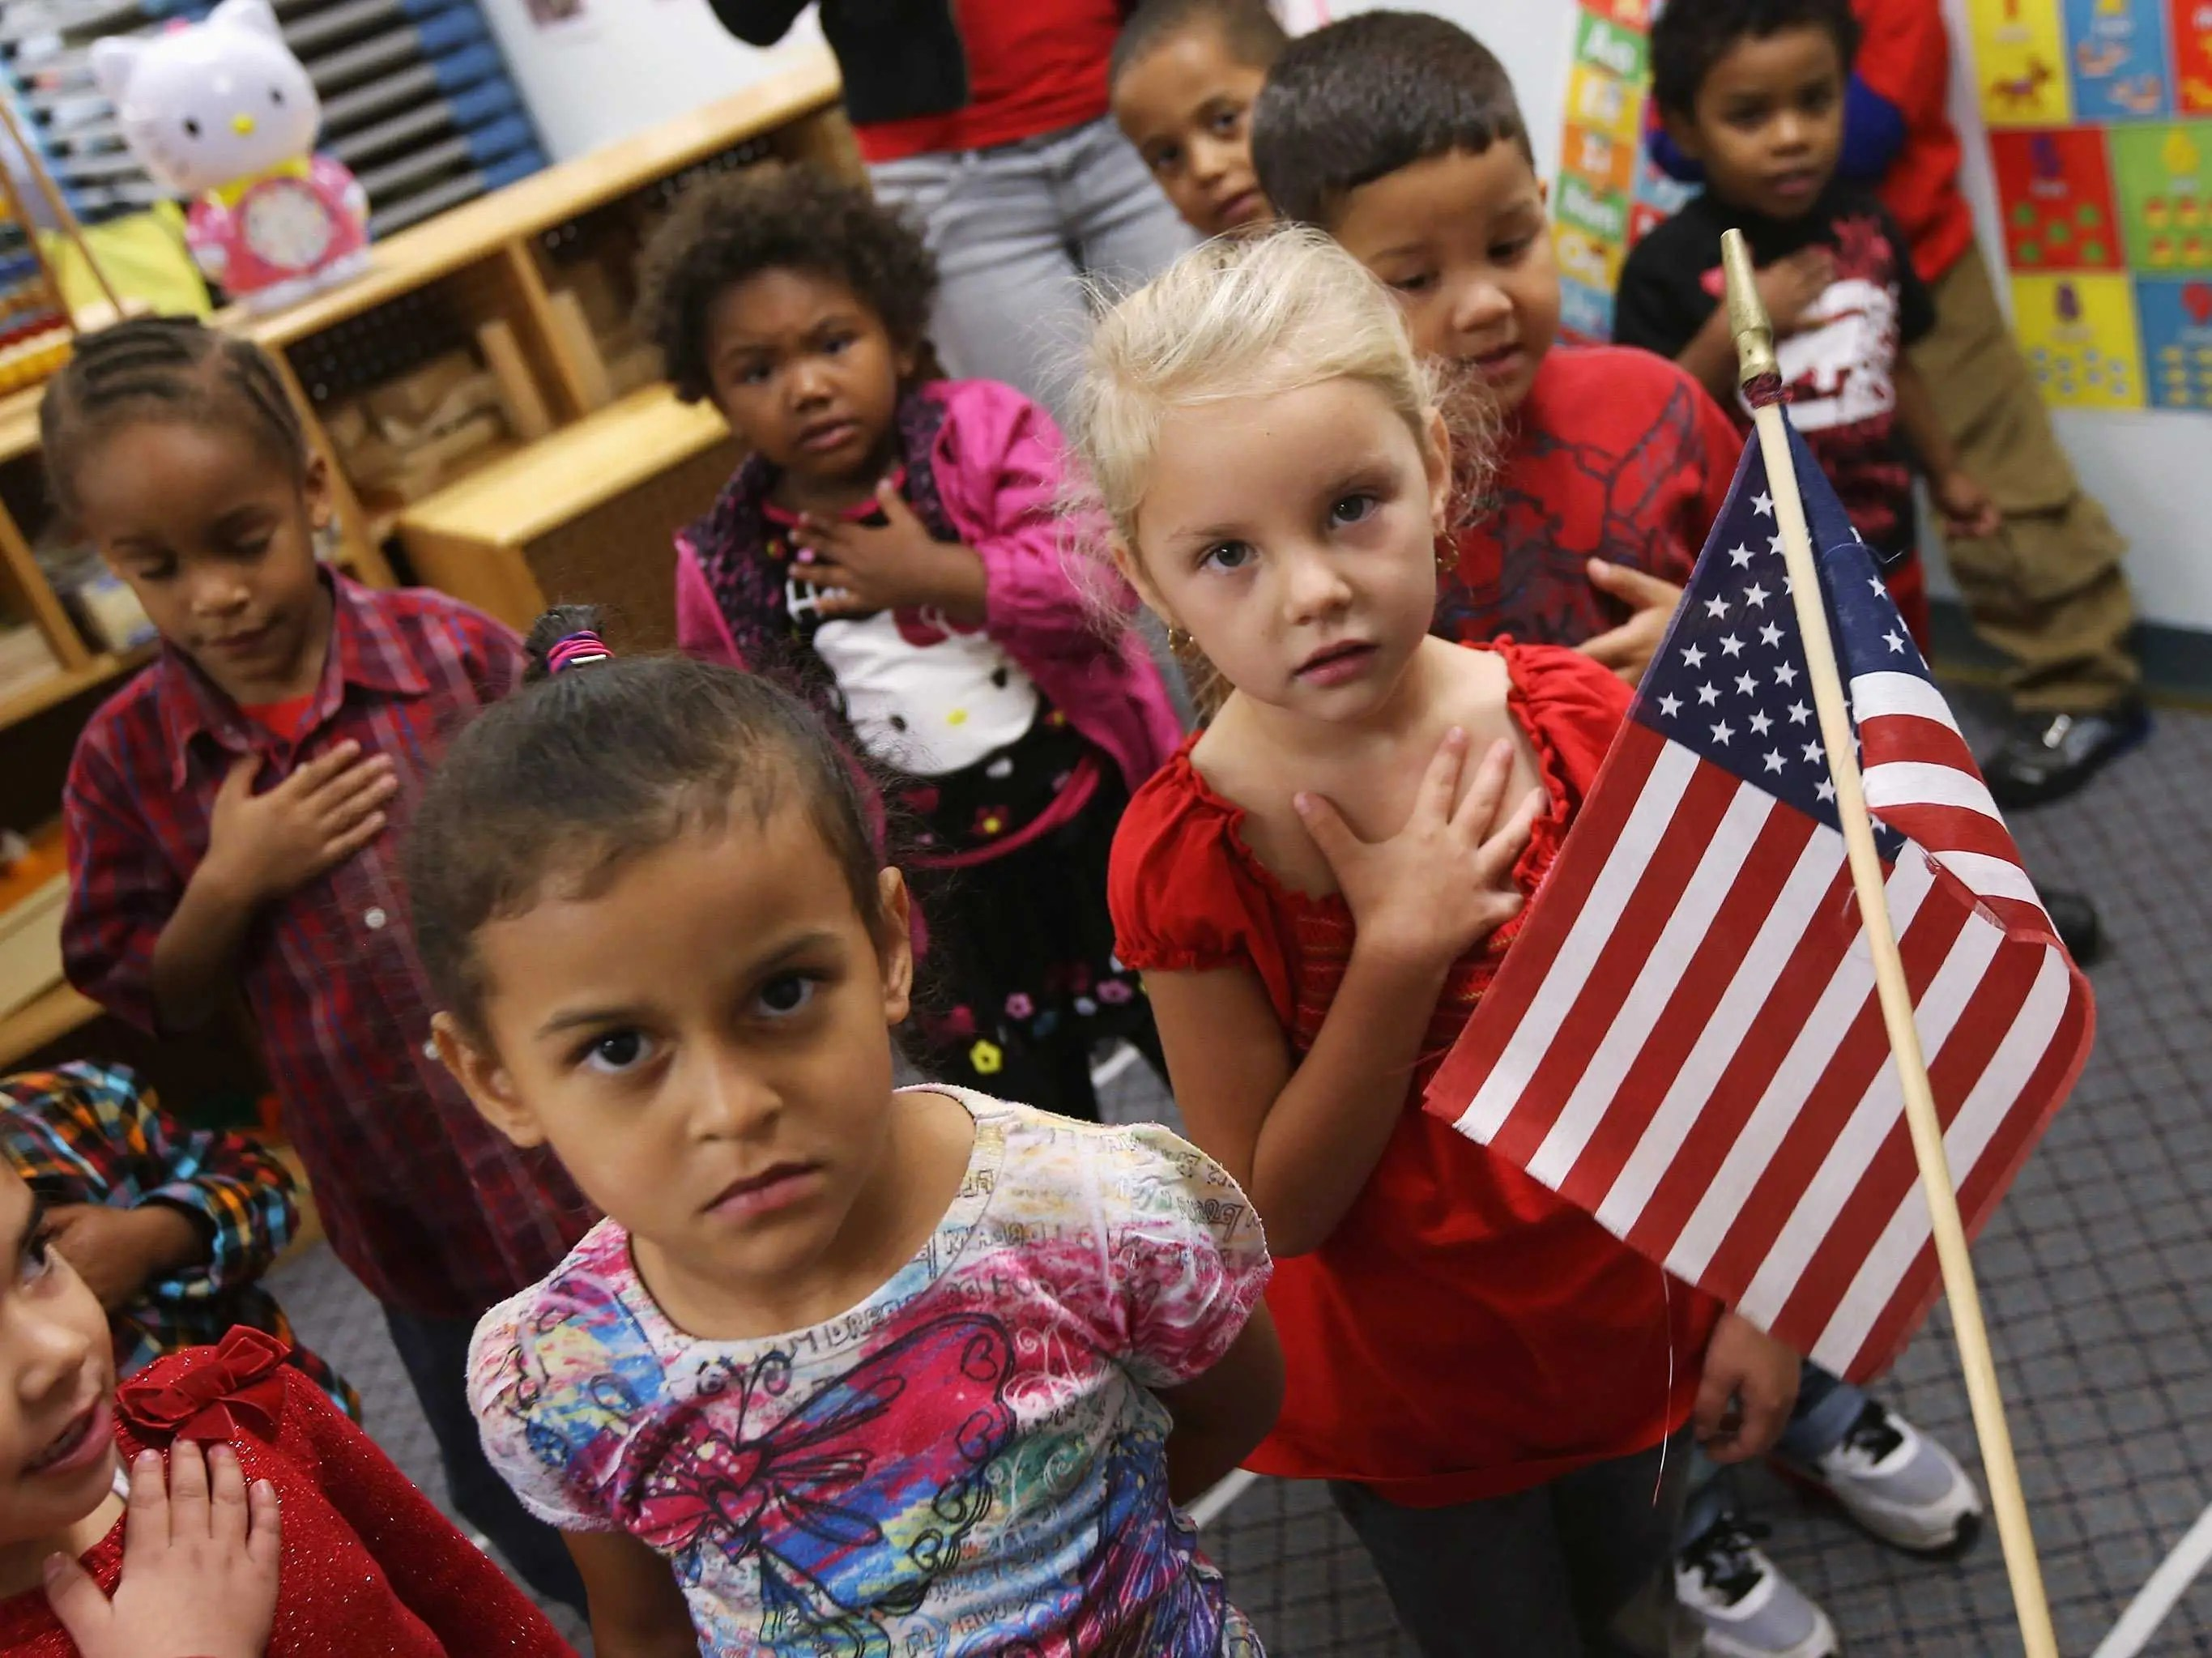 Why Under God Was Added To The Pledge Of Allegiance